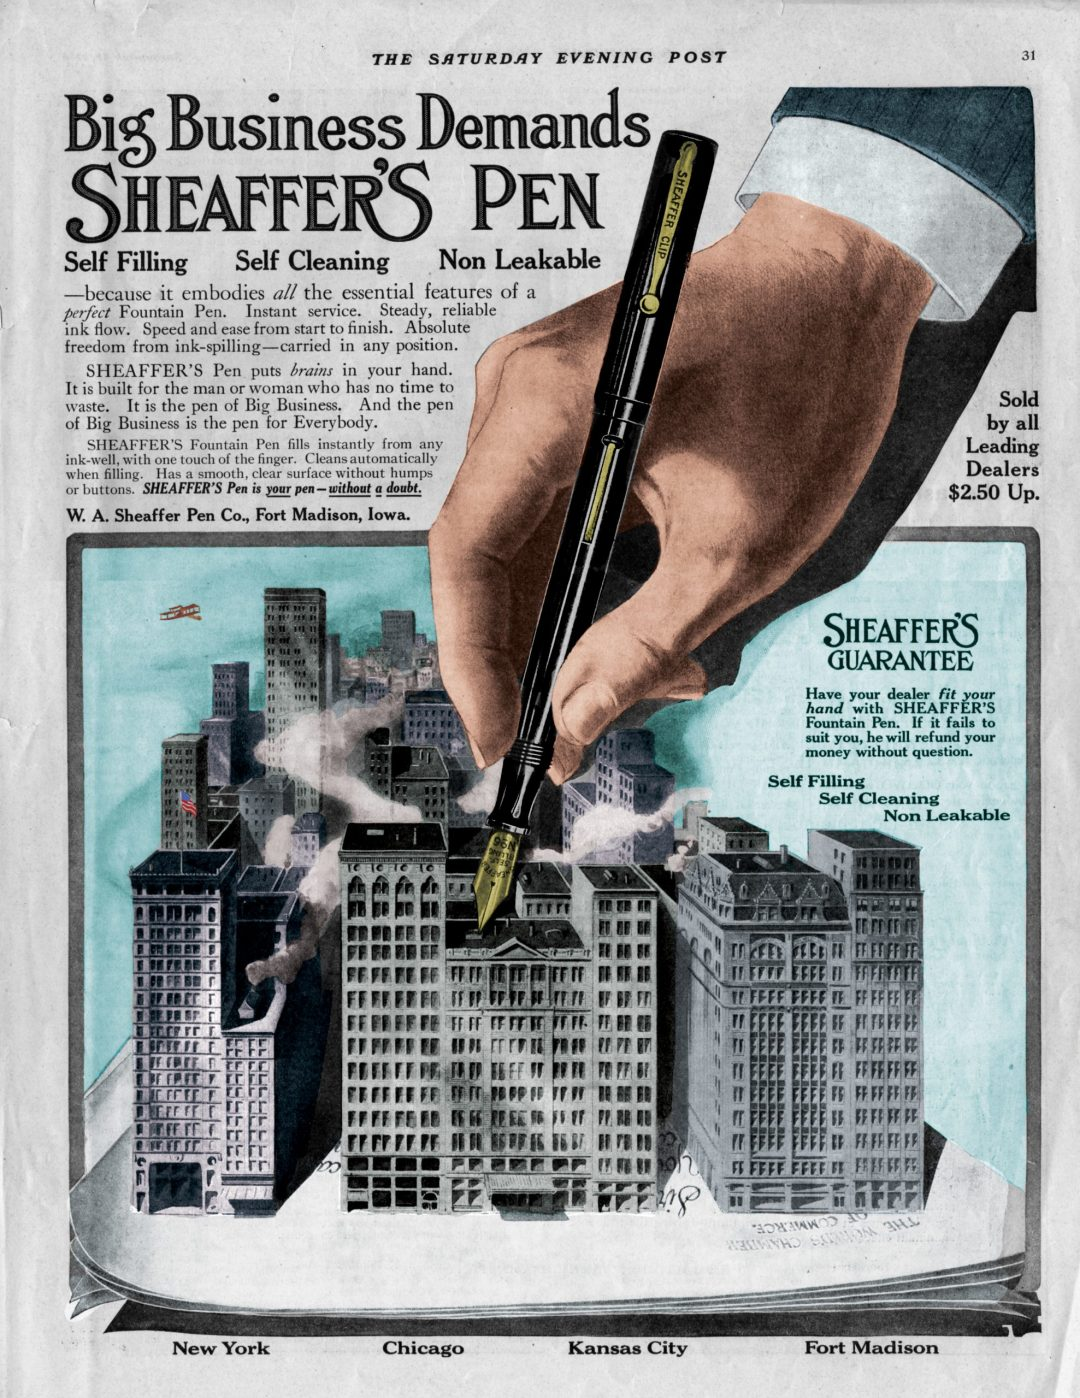 The Saturday Evening Post - Sheaffer Ad September 12, 1914 -- colorized by Nathaniel Harter